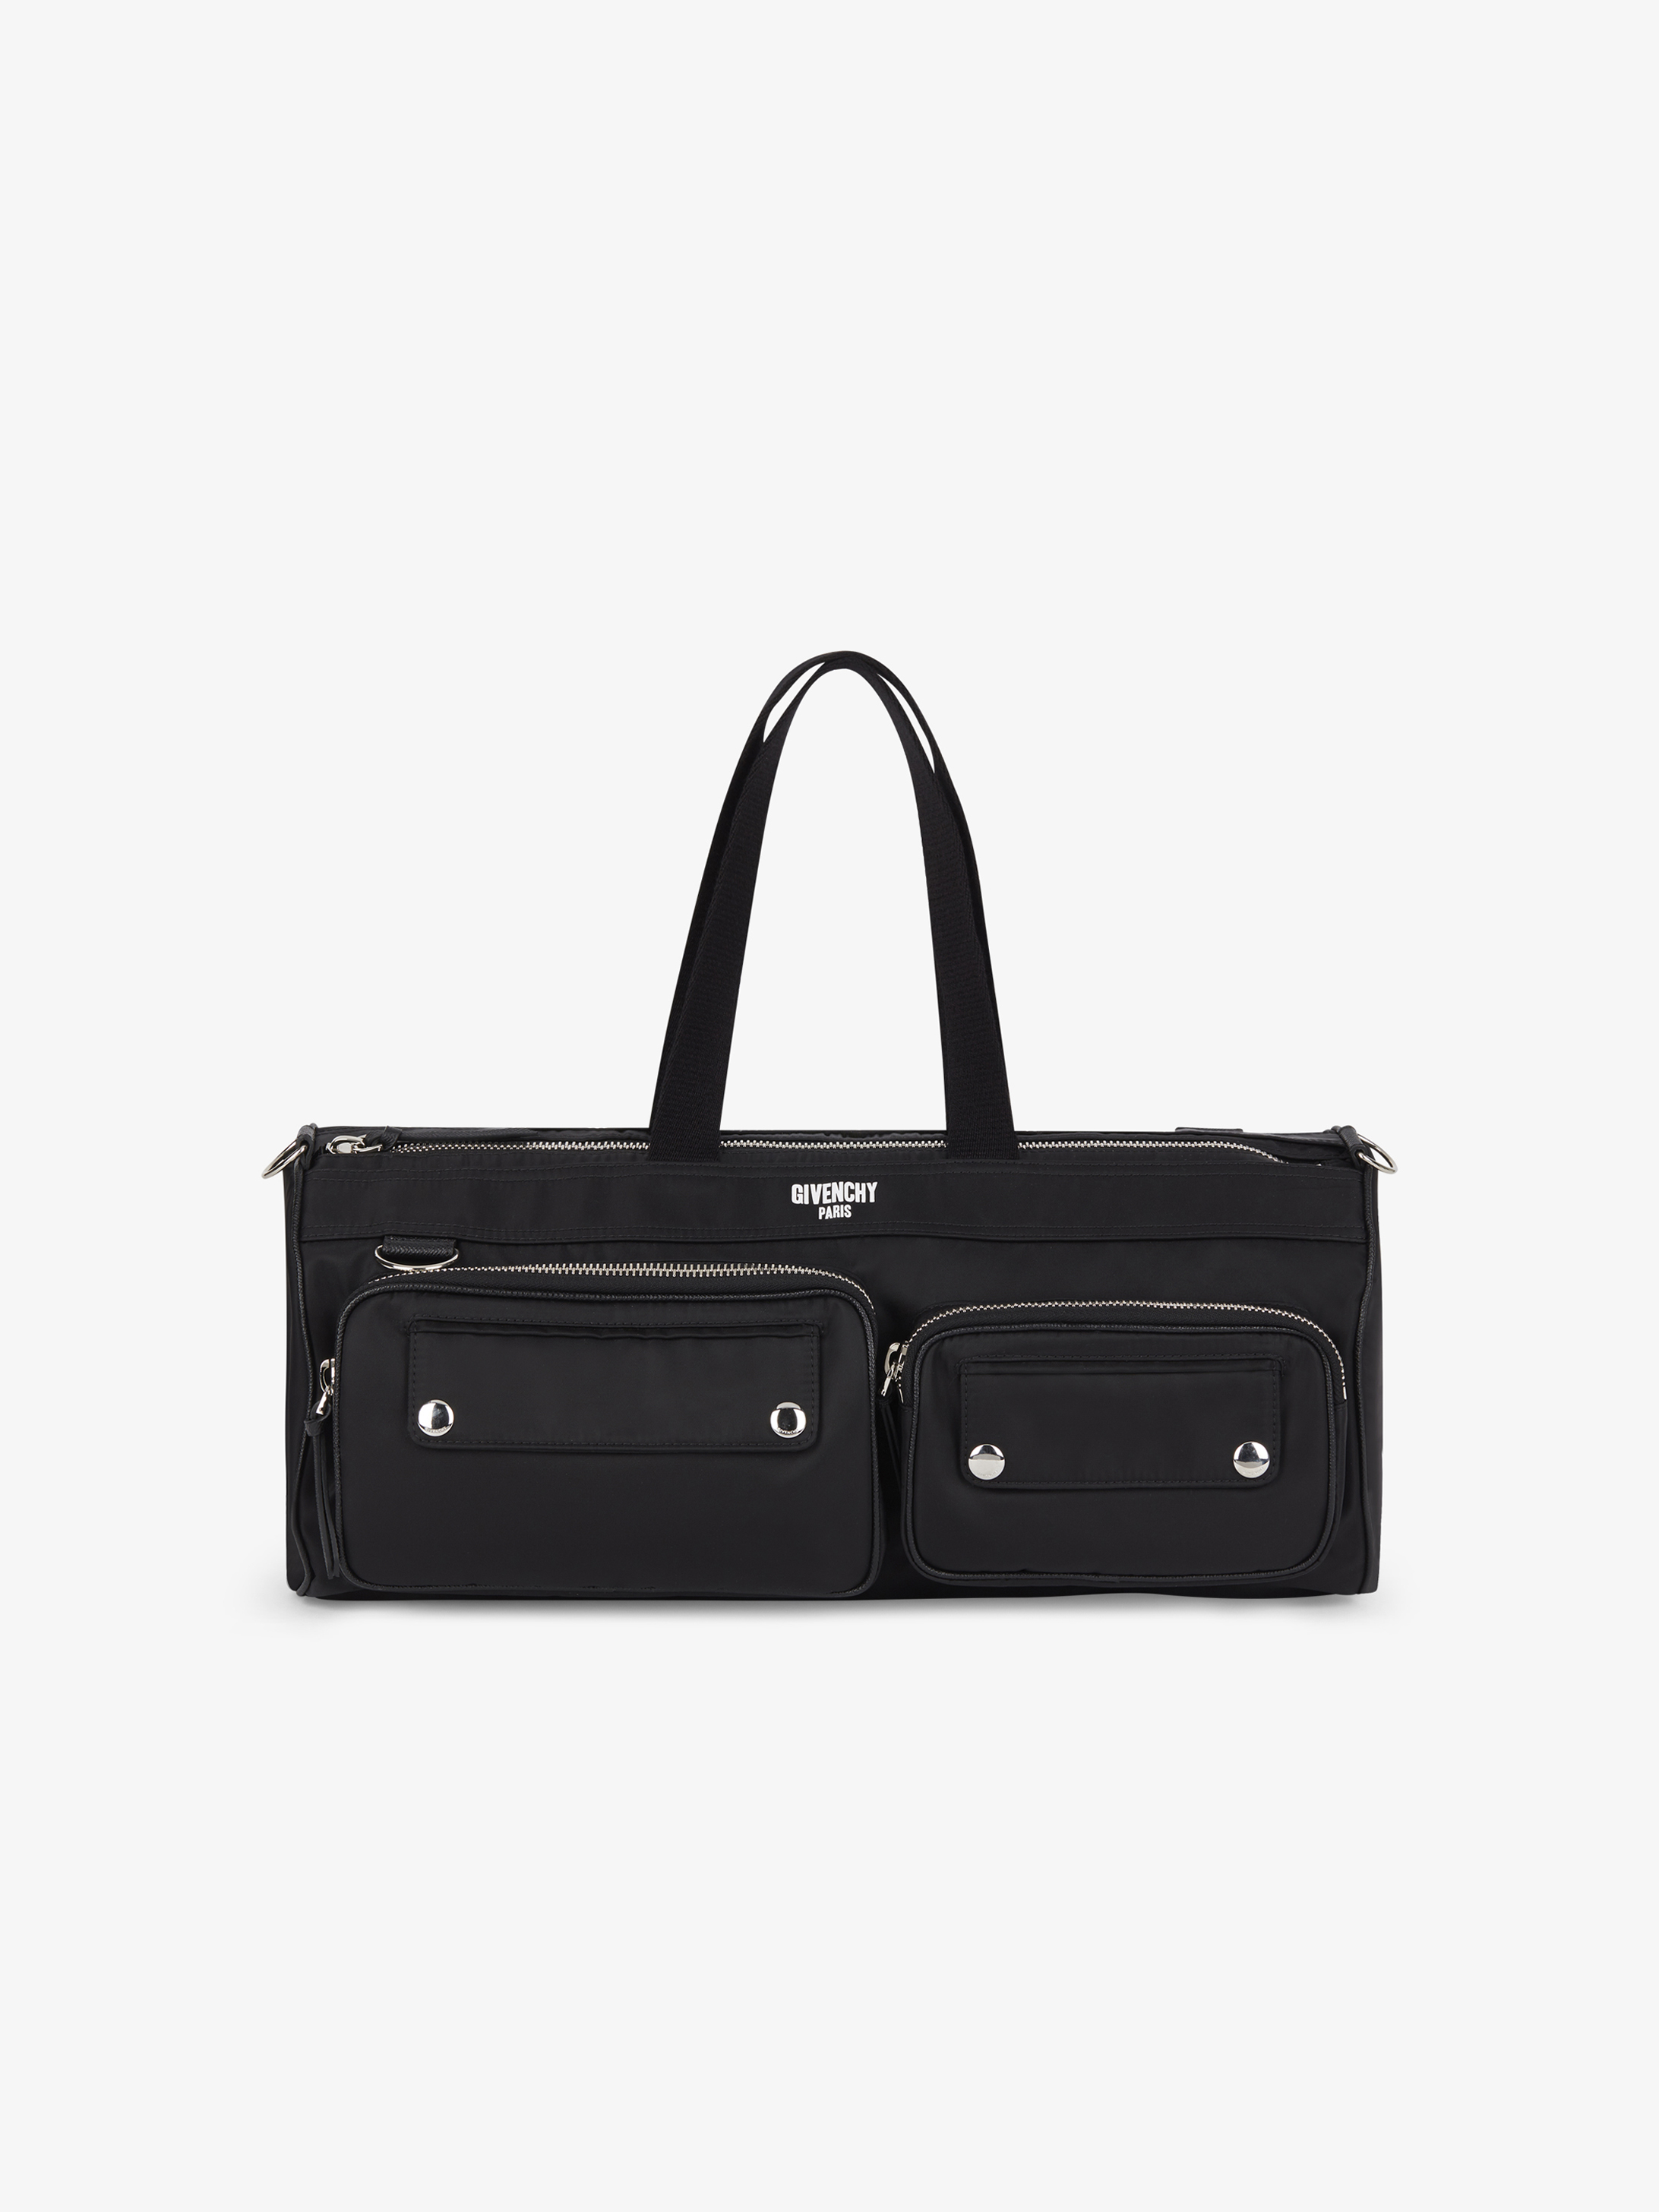 895ccf74a519 Givenchy PARIS printed duffle bag in nylon